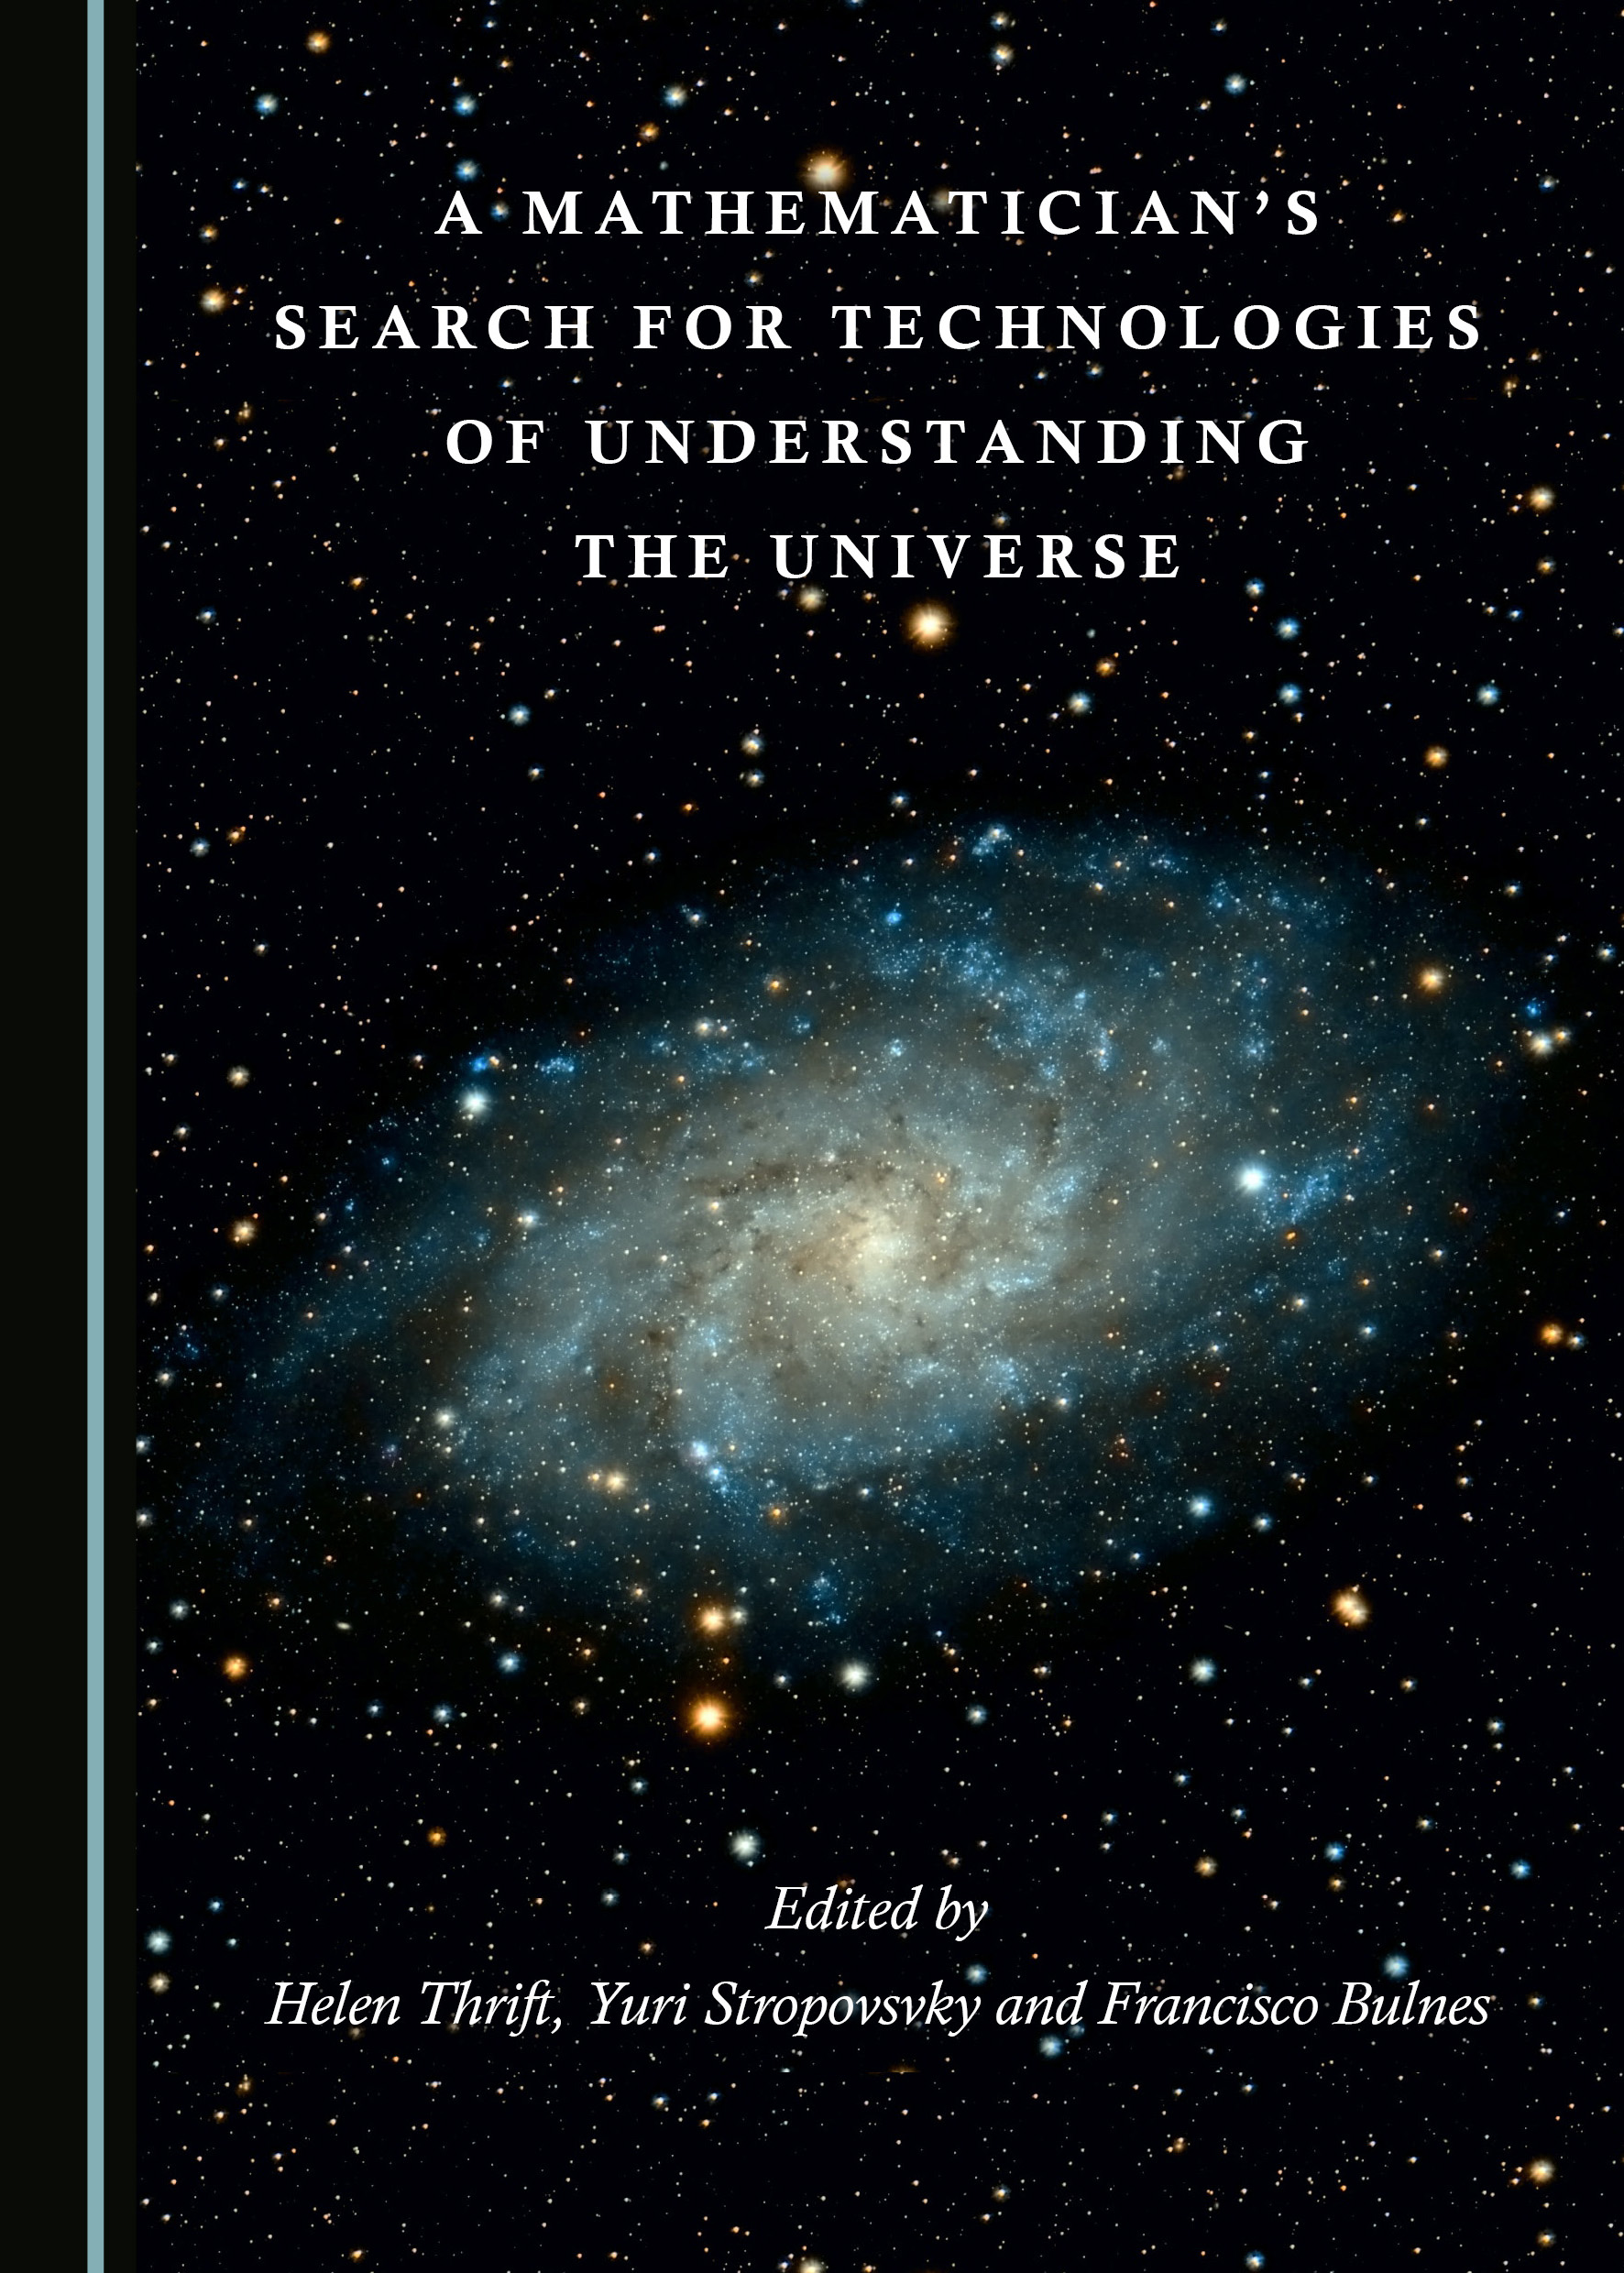 A Mathematician's Search for Technologies of Understanding the Universe